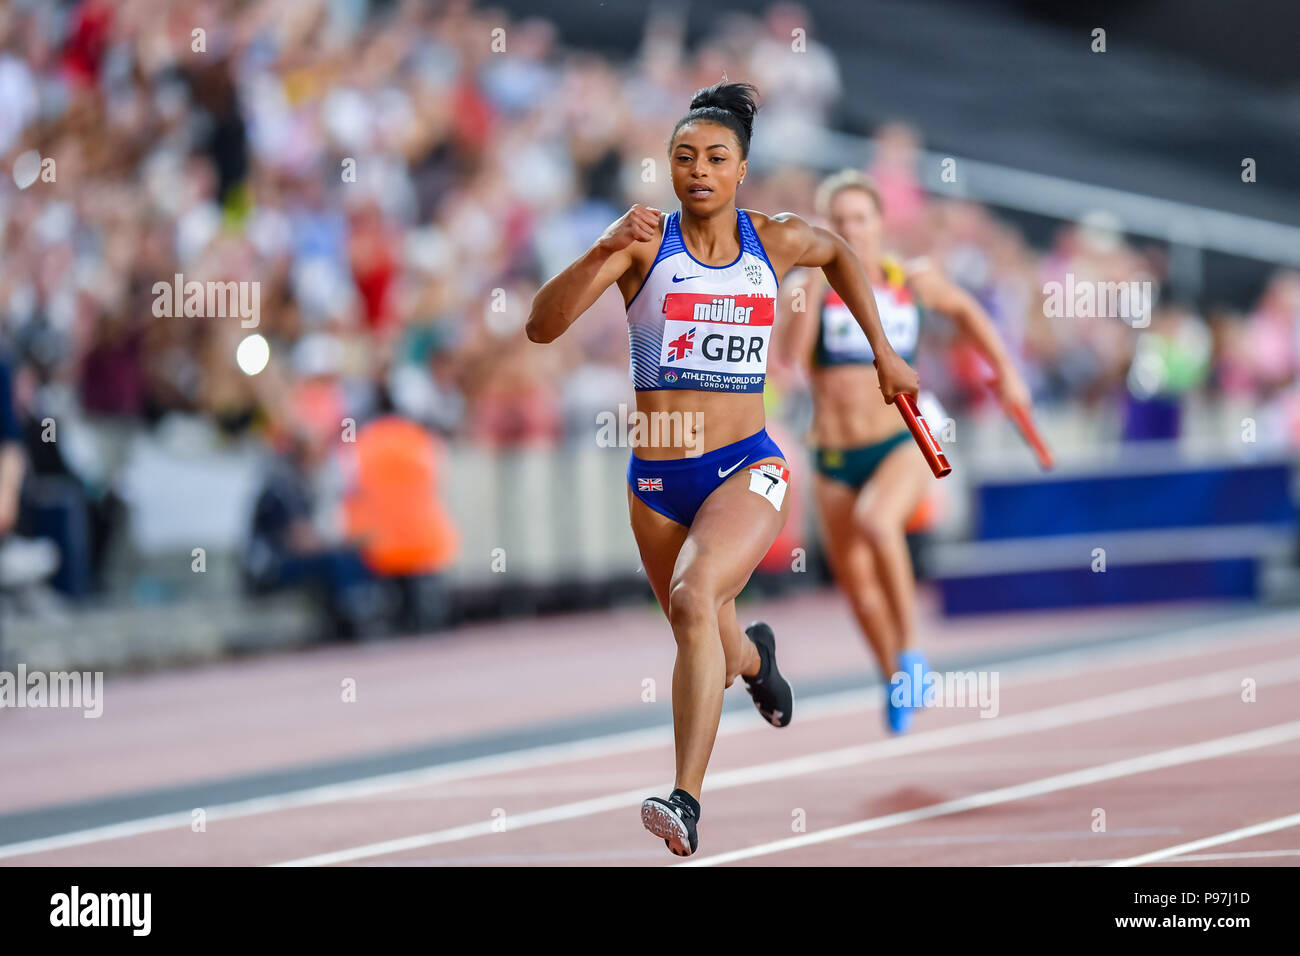 Shannon Hylton (GBR) in Women's 4 x 100m Relay during Athletics World Cup London 2018 at London Stadium on Sunday, 15 July 2018. LONDON, ENGLAND. Credit: Taka G Wu - Stock Image